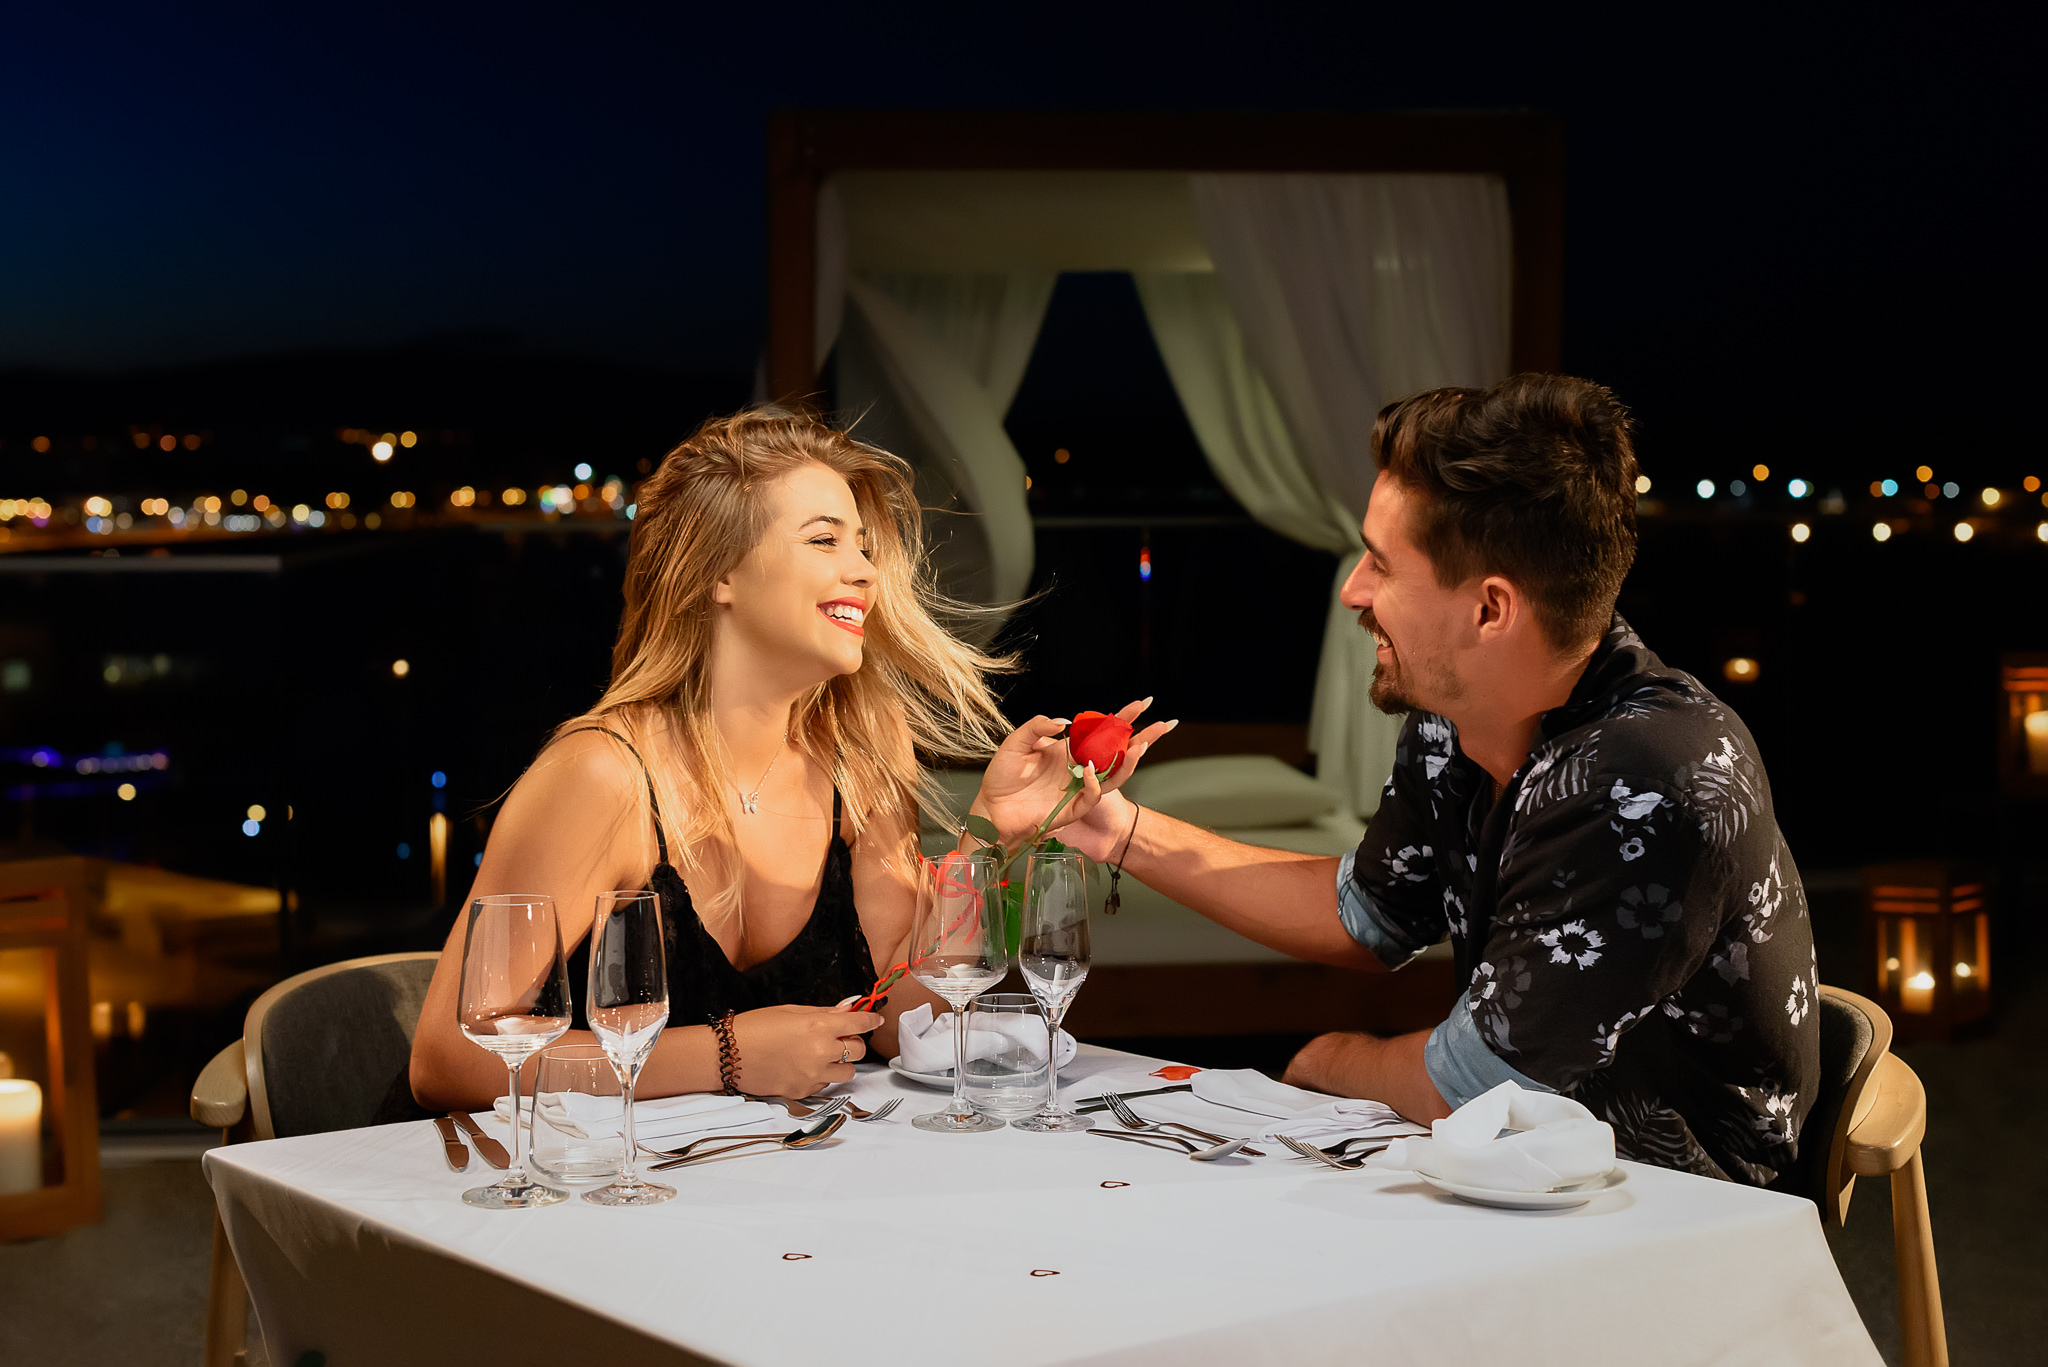 458/Photos-Group/Experiences/Private-Dinner-Rooftop_5.jpg